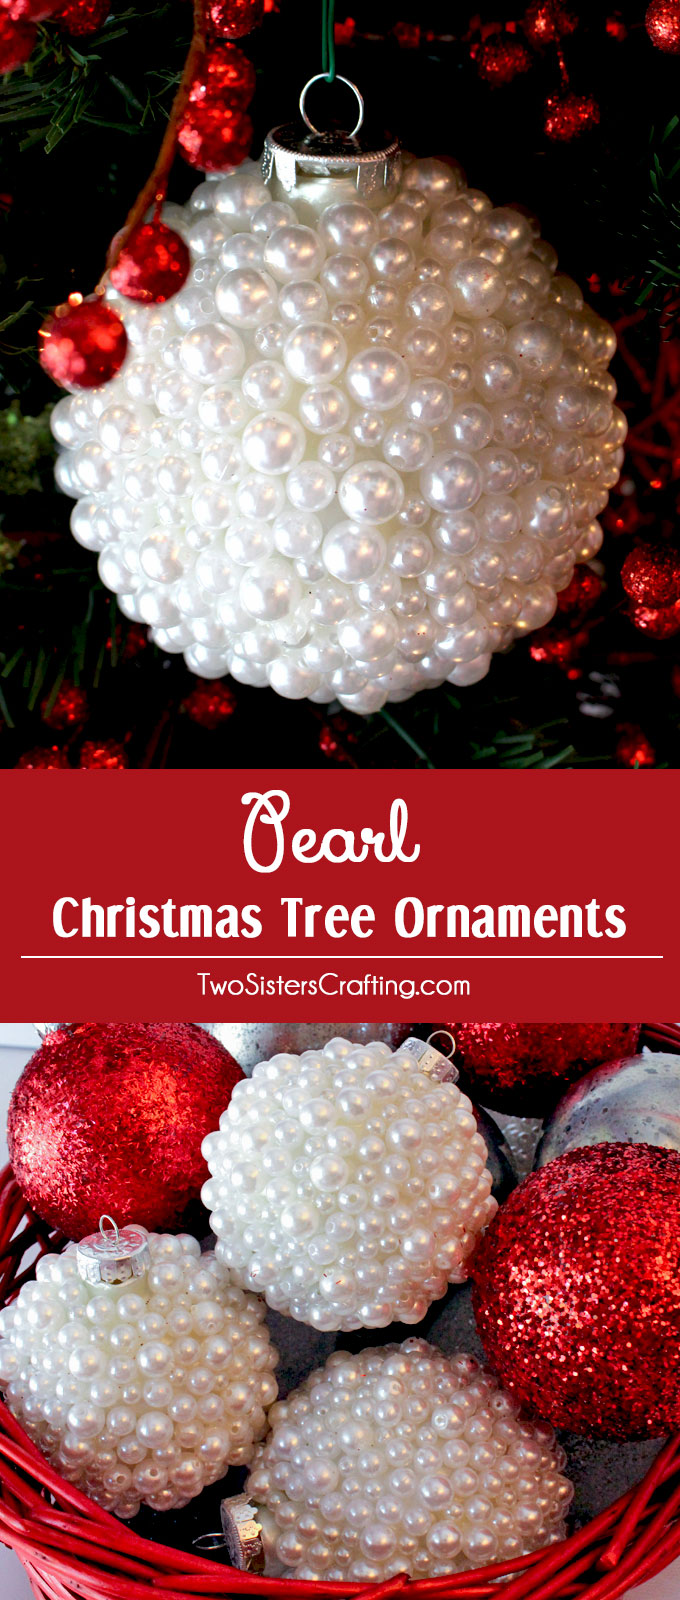 Christmas Craft Ornament Ideas Part - 50: These Pearl Christmas Tree Ornaments Are A Fun Craft That Results In  Beautifully Unique Christmas Ornaments